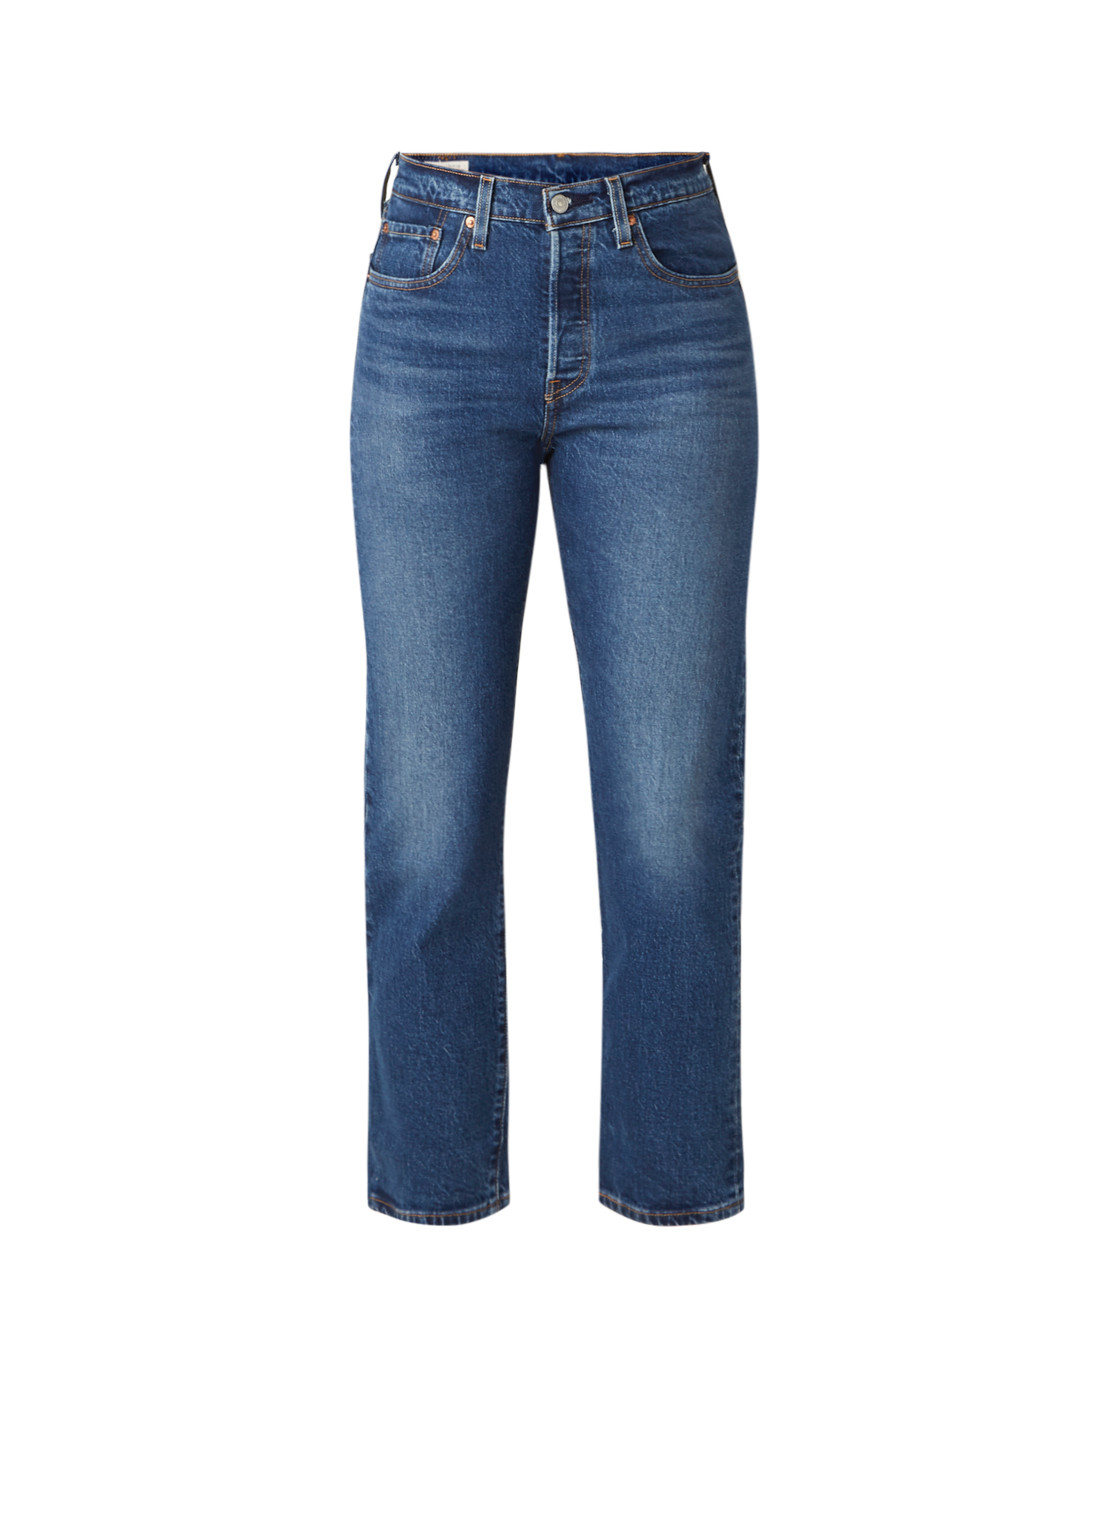 501 High waist straight fit cropped jeans